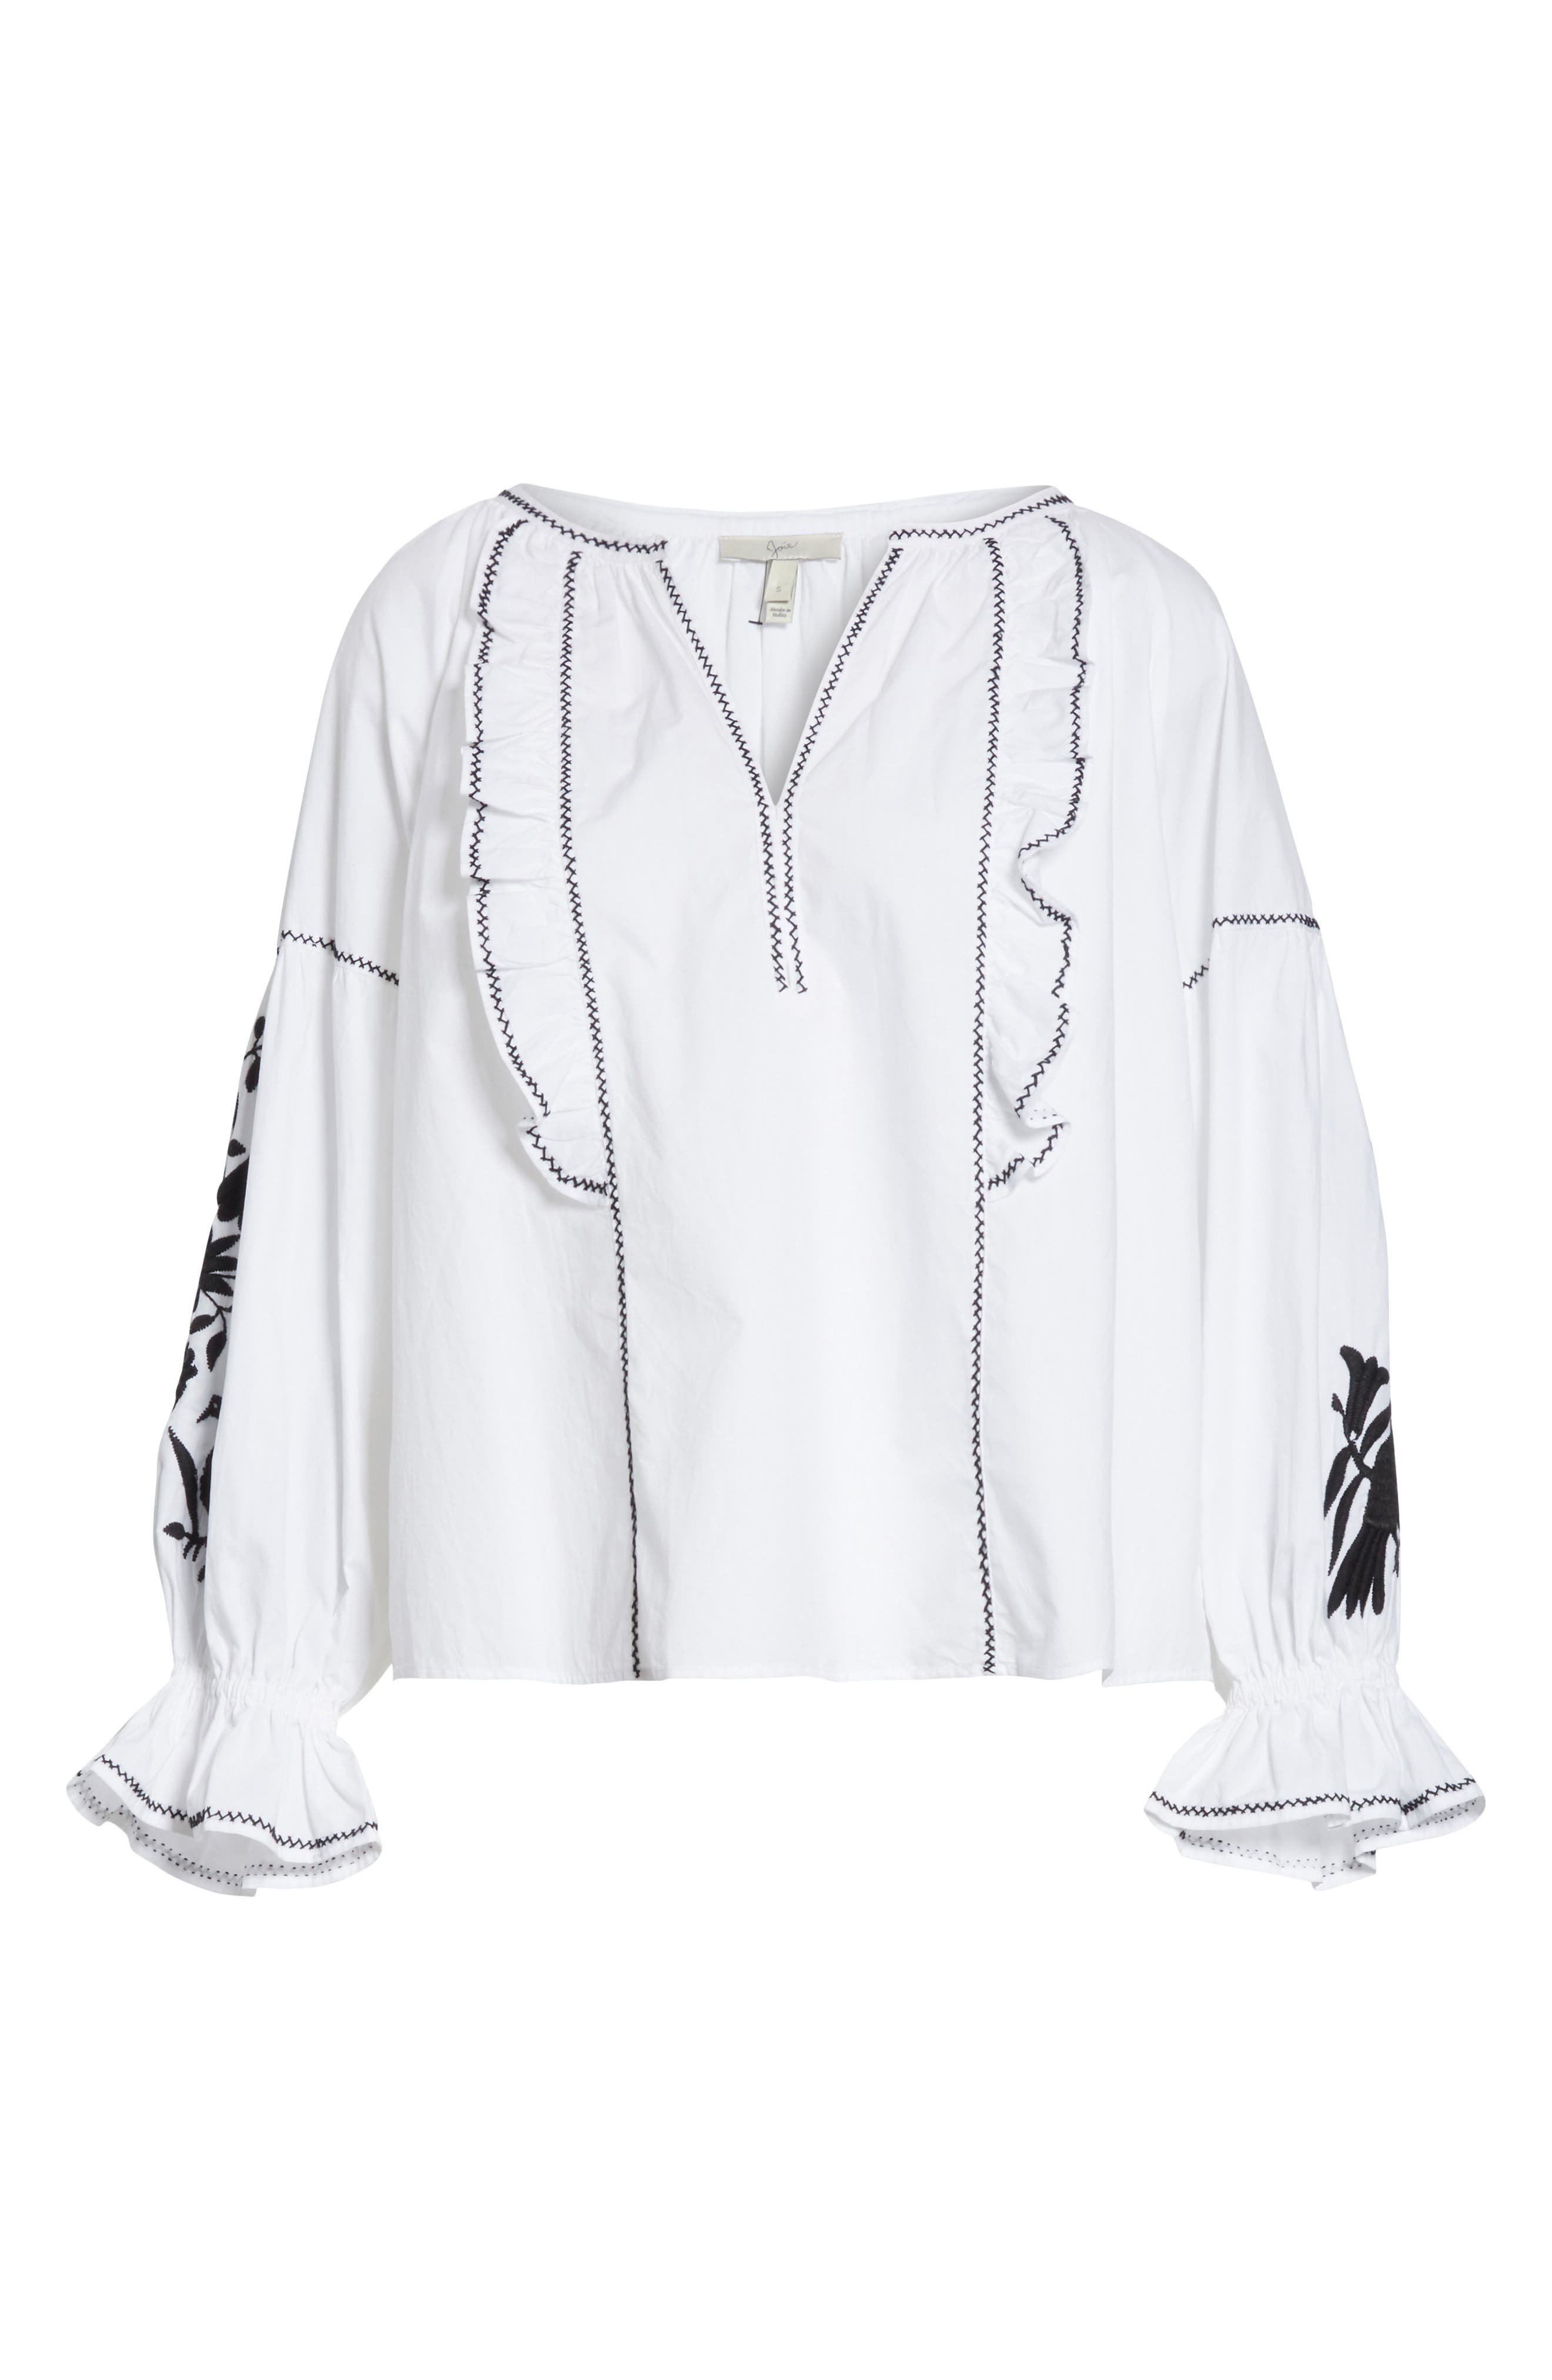 Cleavanta Embroidered Peasant Blouse,                             Alternate thumbnail 6, color,                             Clean White Caviar